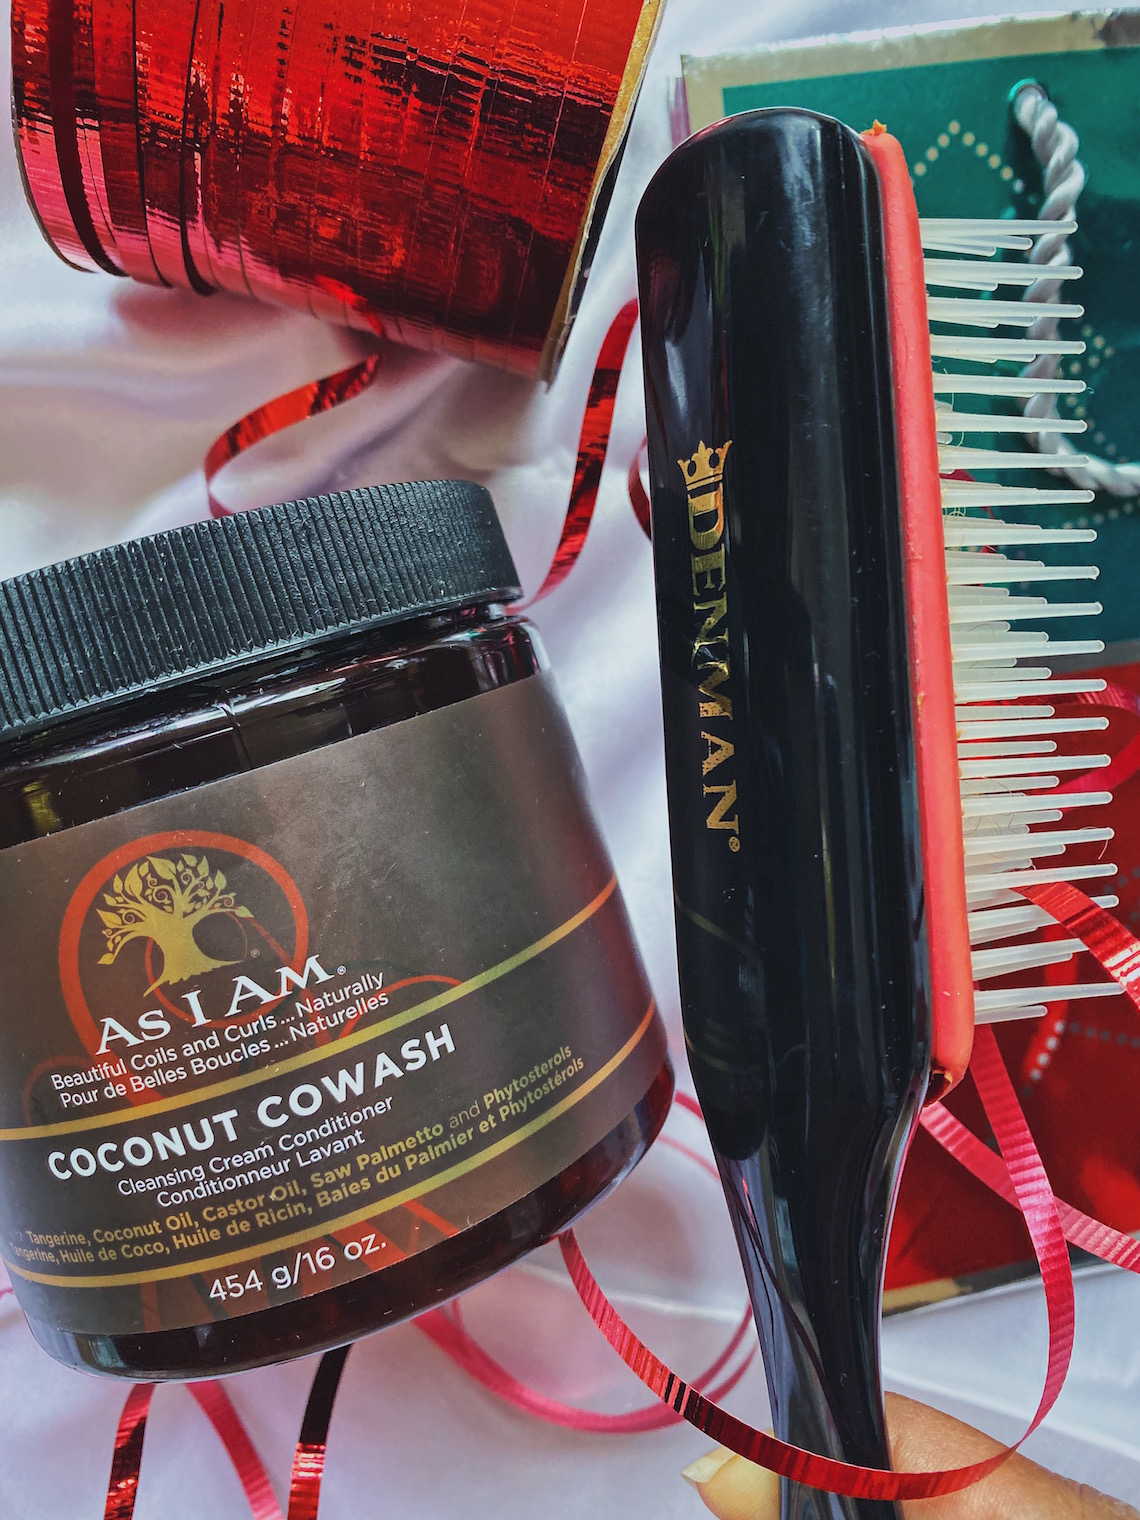 as i am coconut cowash-denman brush